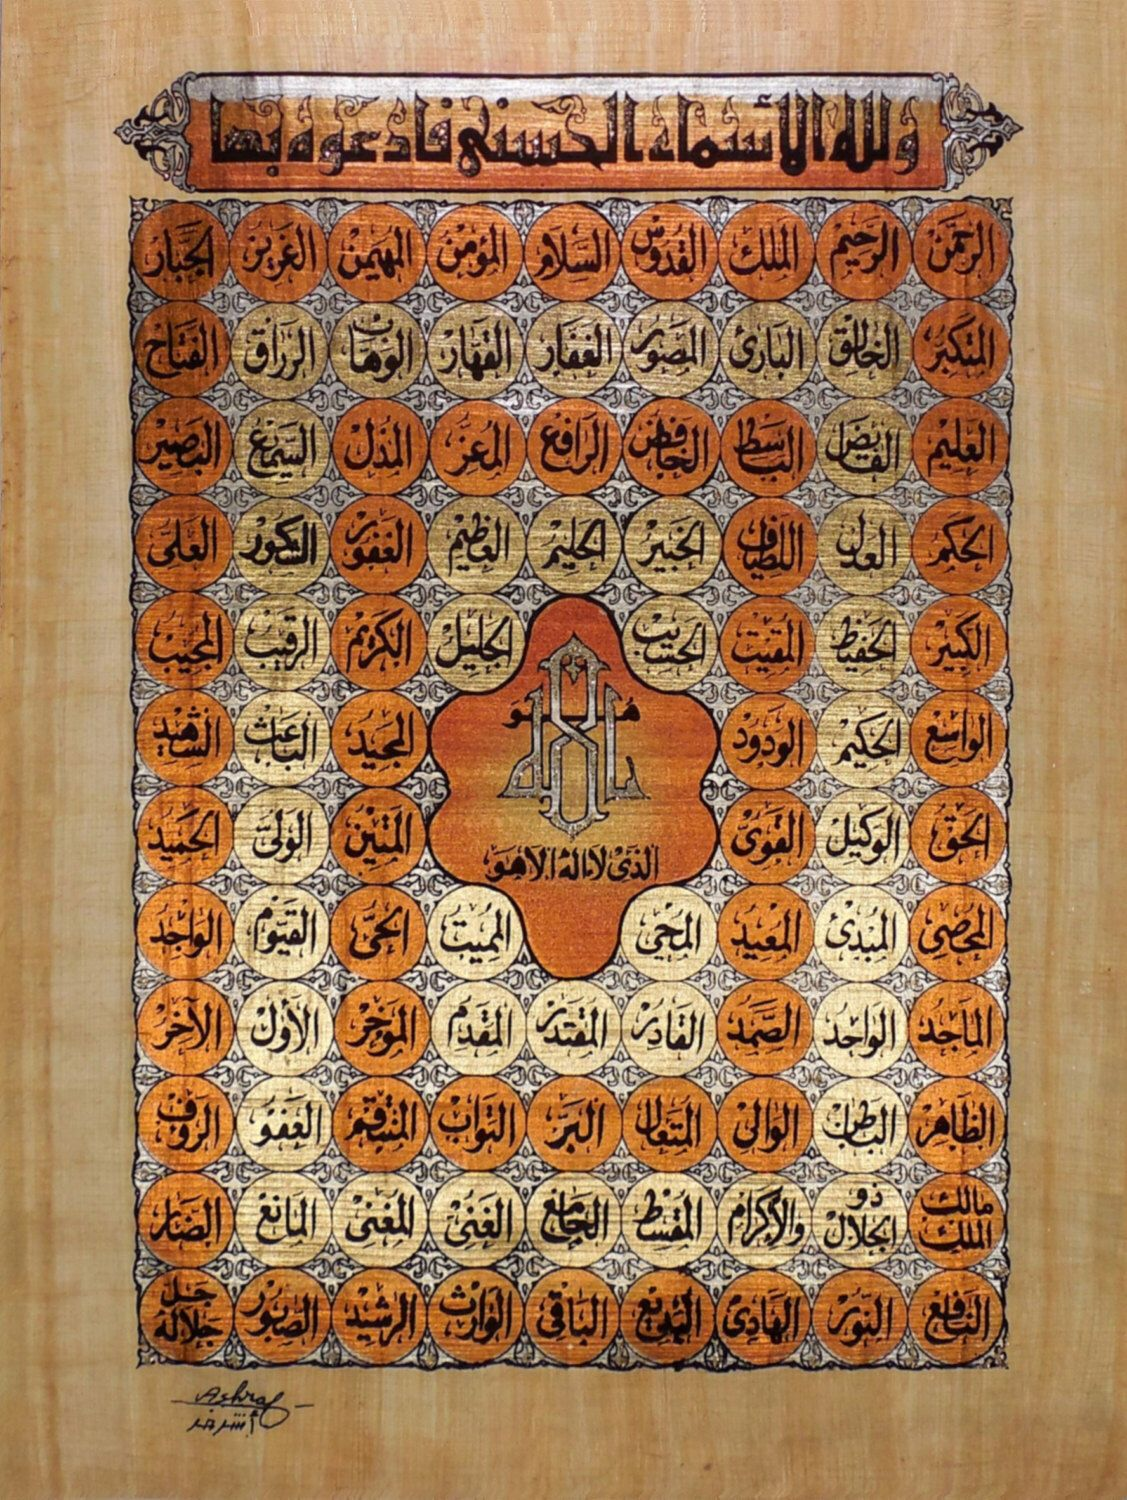 The 99 Names Of Allah Egyptian Papyrus Arabic By Arkangallery Islamic Calligraphy Allah Calligraphy Islamic Art